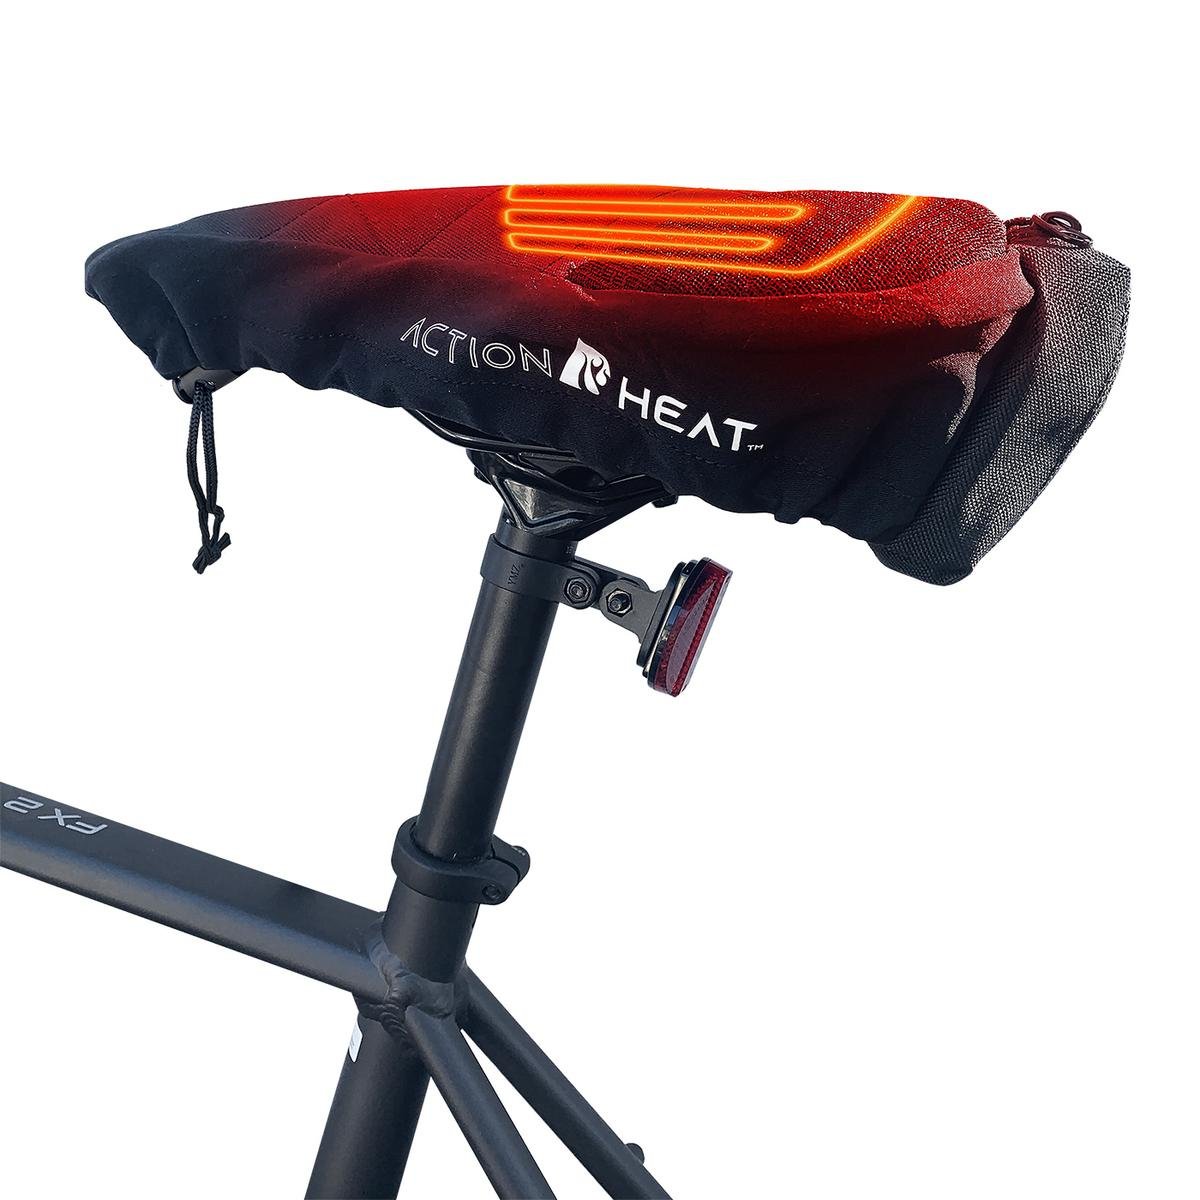 ActionHeat 5V Battery Heated Bicycle Seat - Info